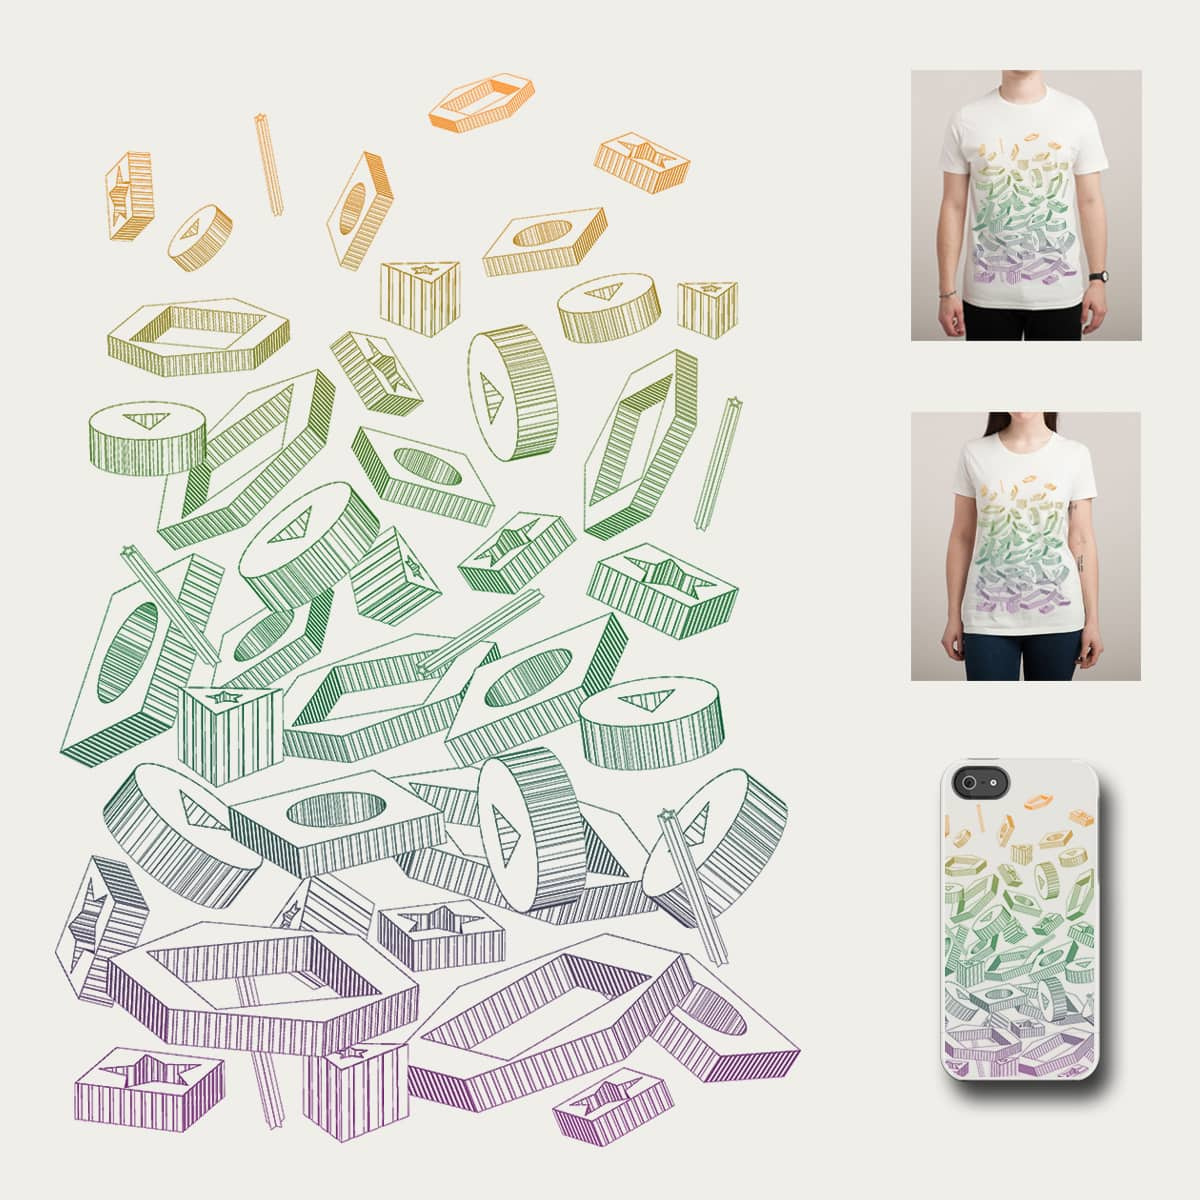 Muddled Mind by Leo Canham on Threadless